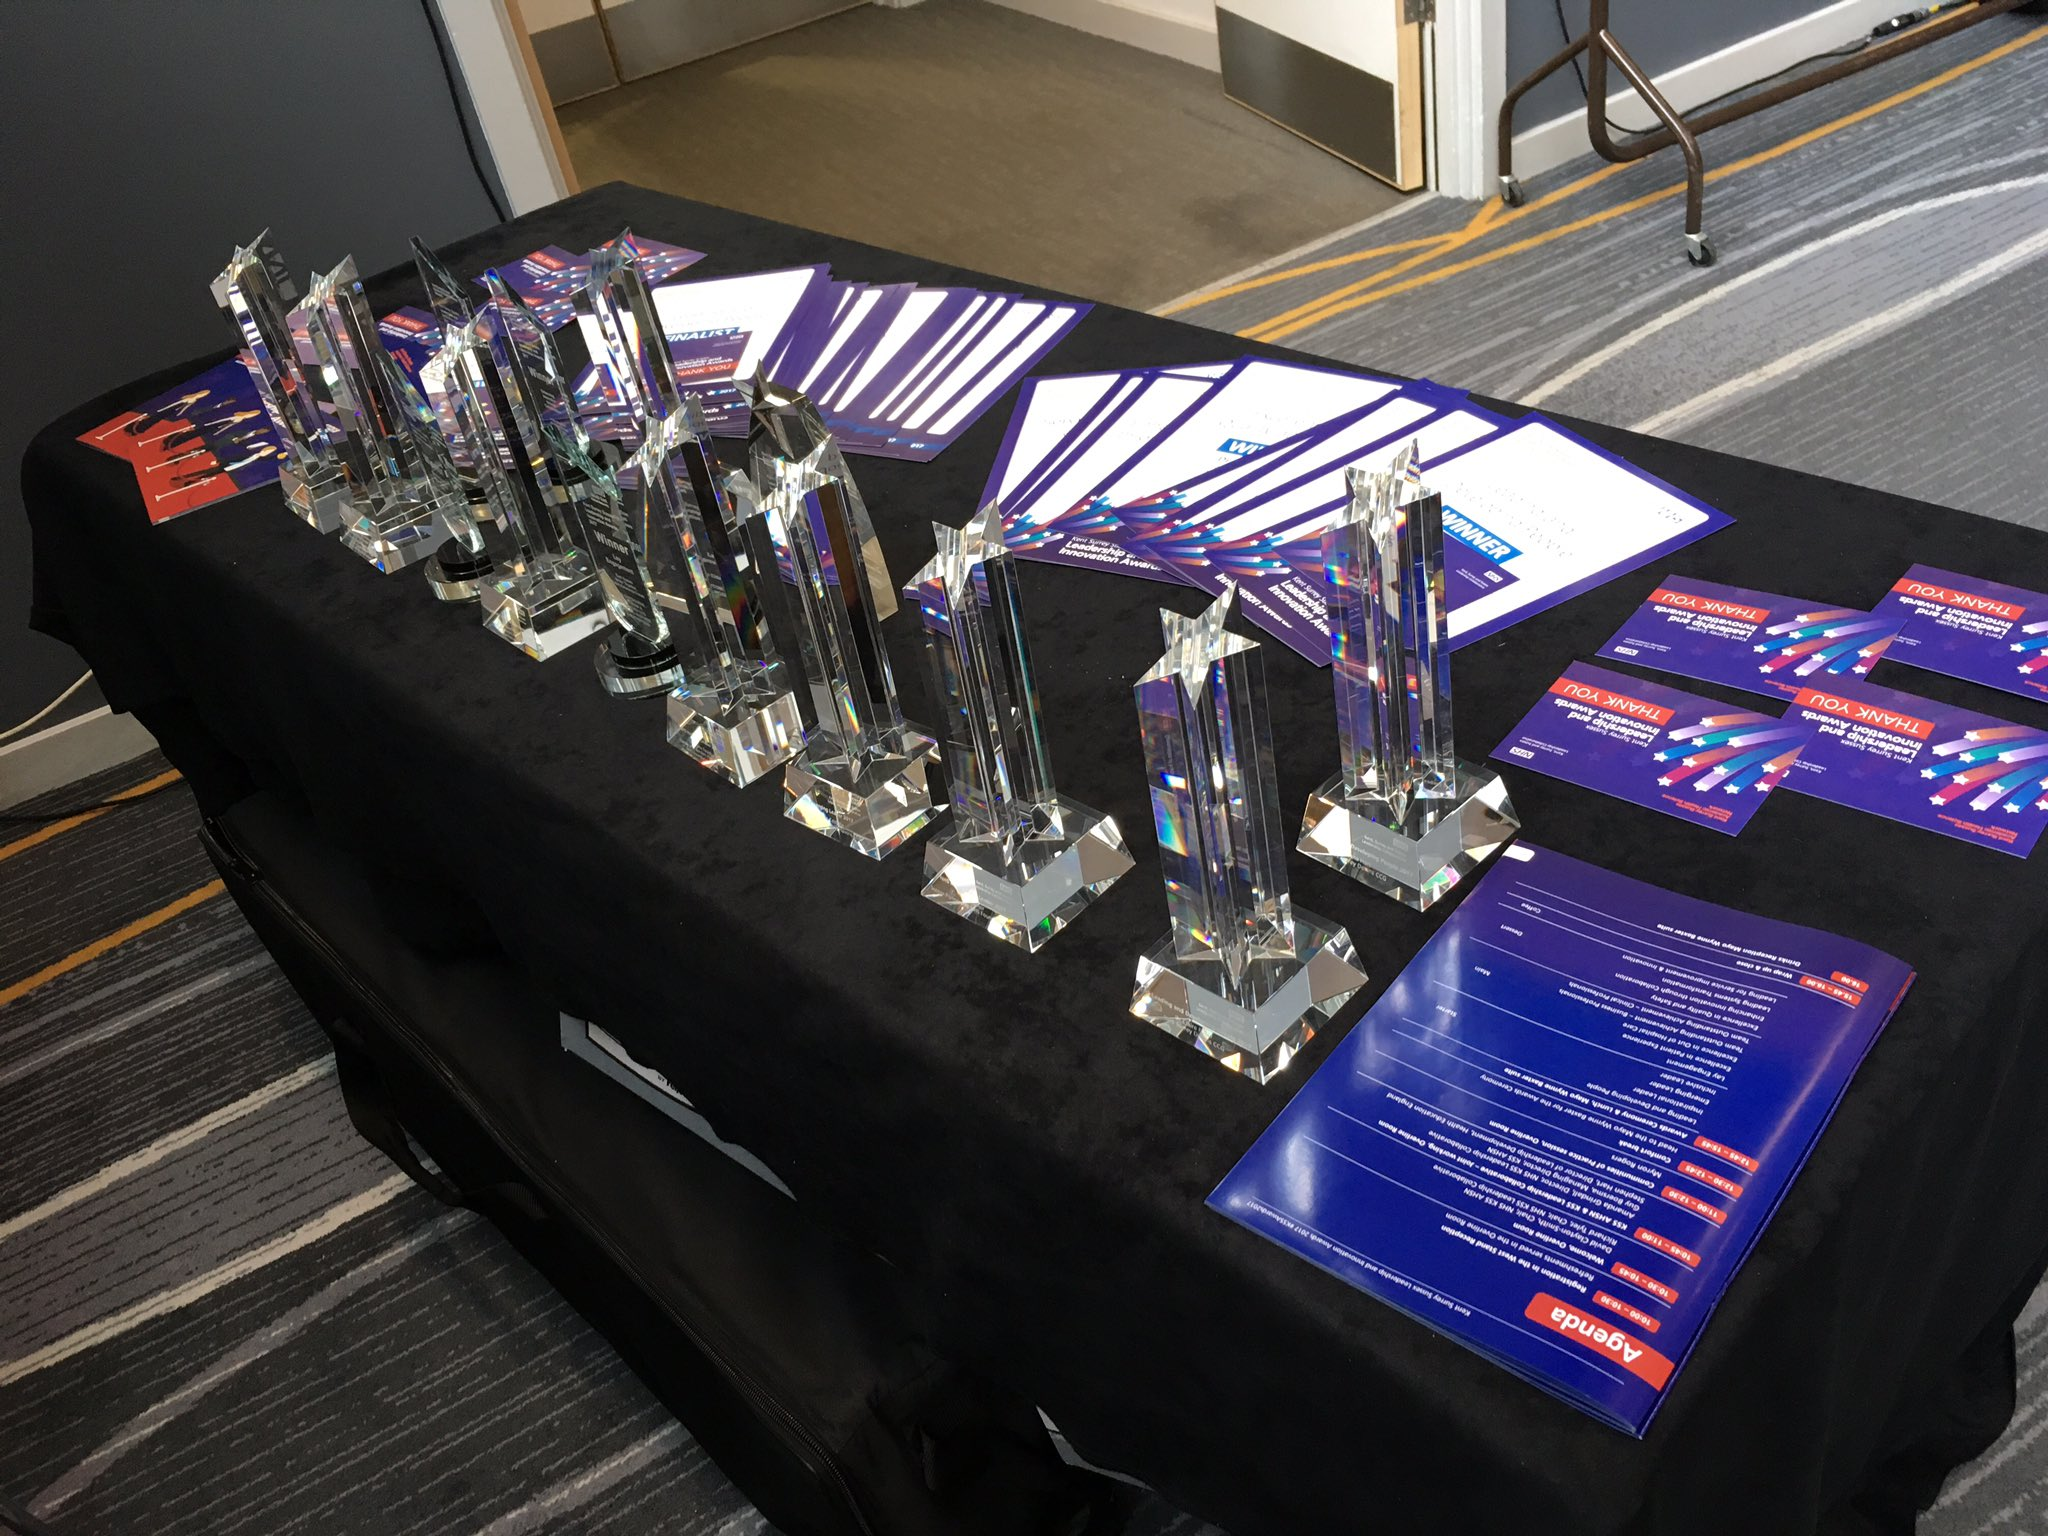 Best of luck to all our #kssawards2017 finalists today! https://t.co/QvVYRSgBxe